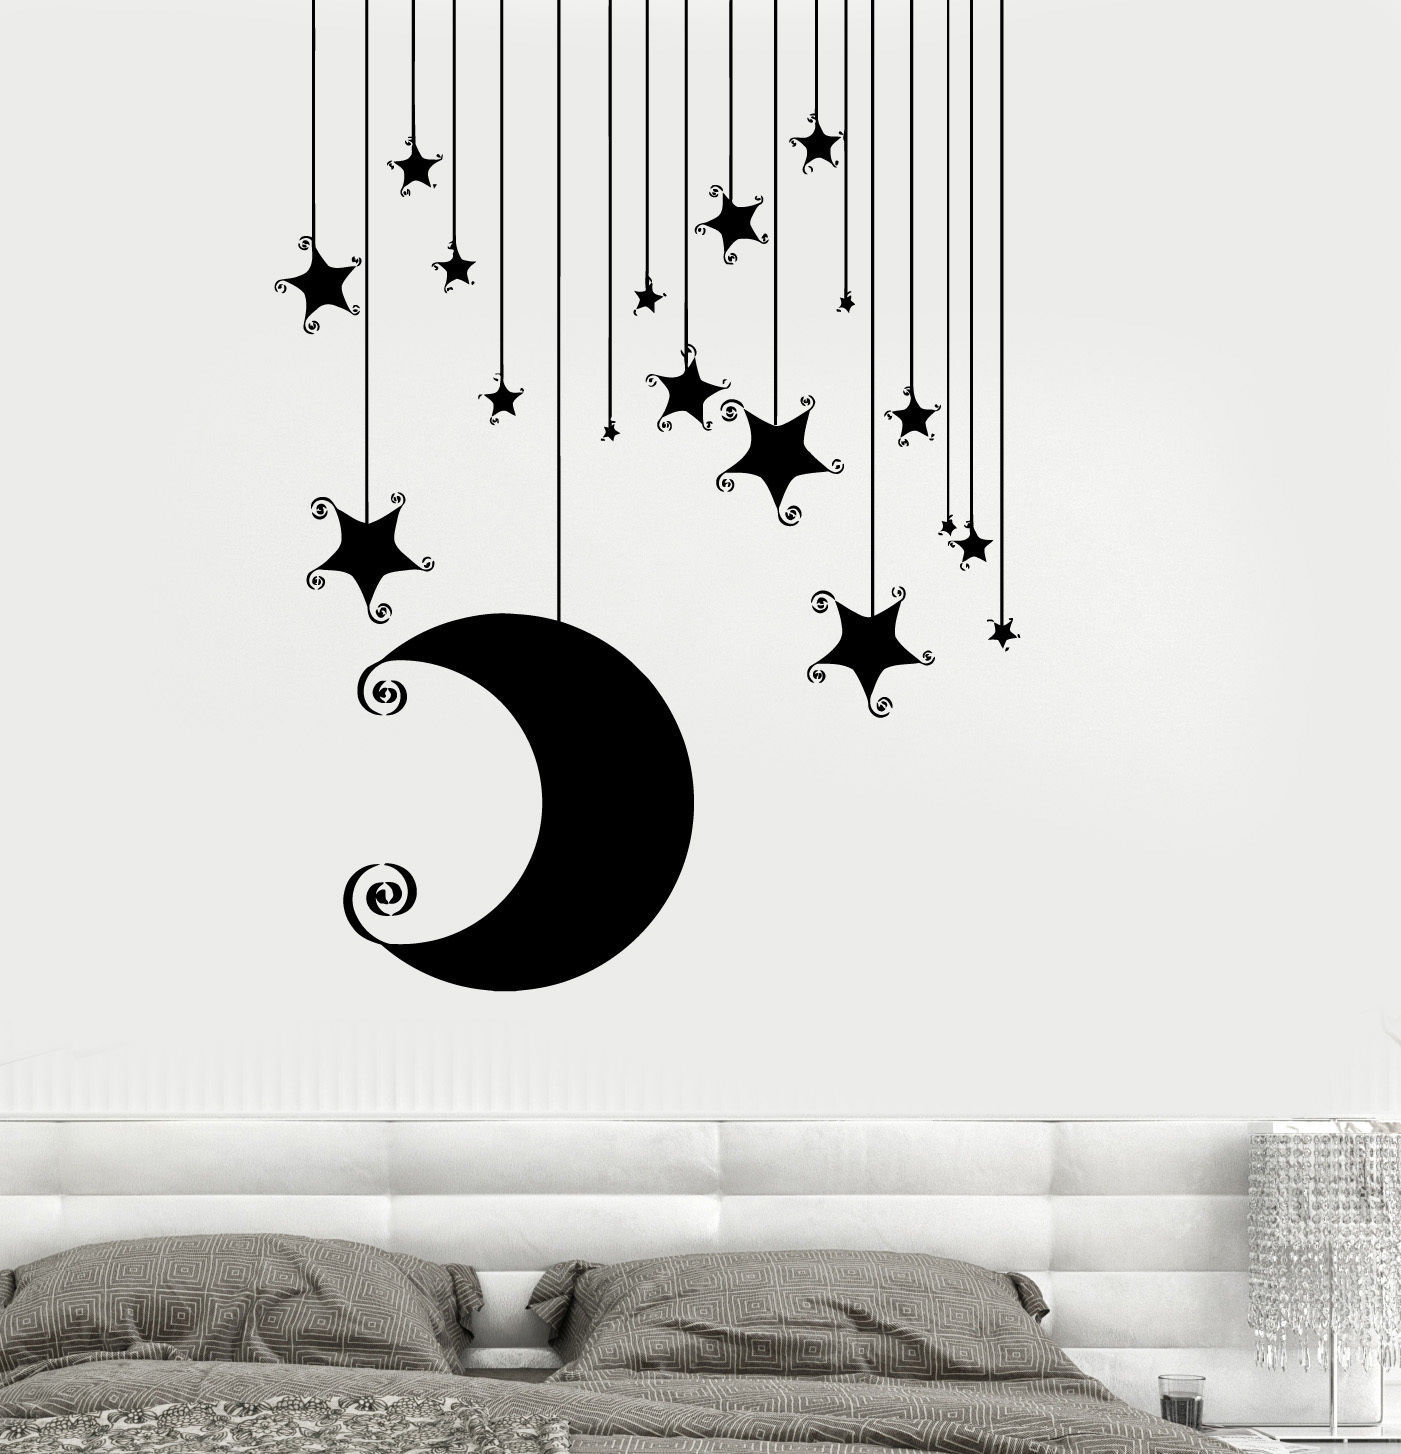 Wall Vinyl Decal Romantic Bedroom Stars Moon Cool Kids Decor z3681